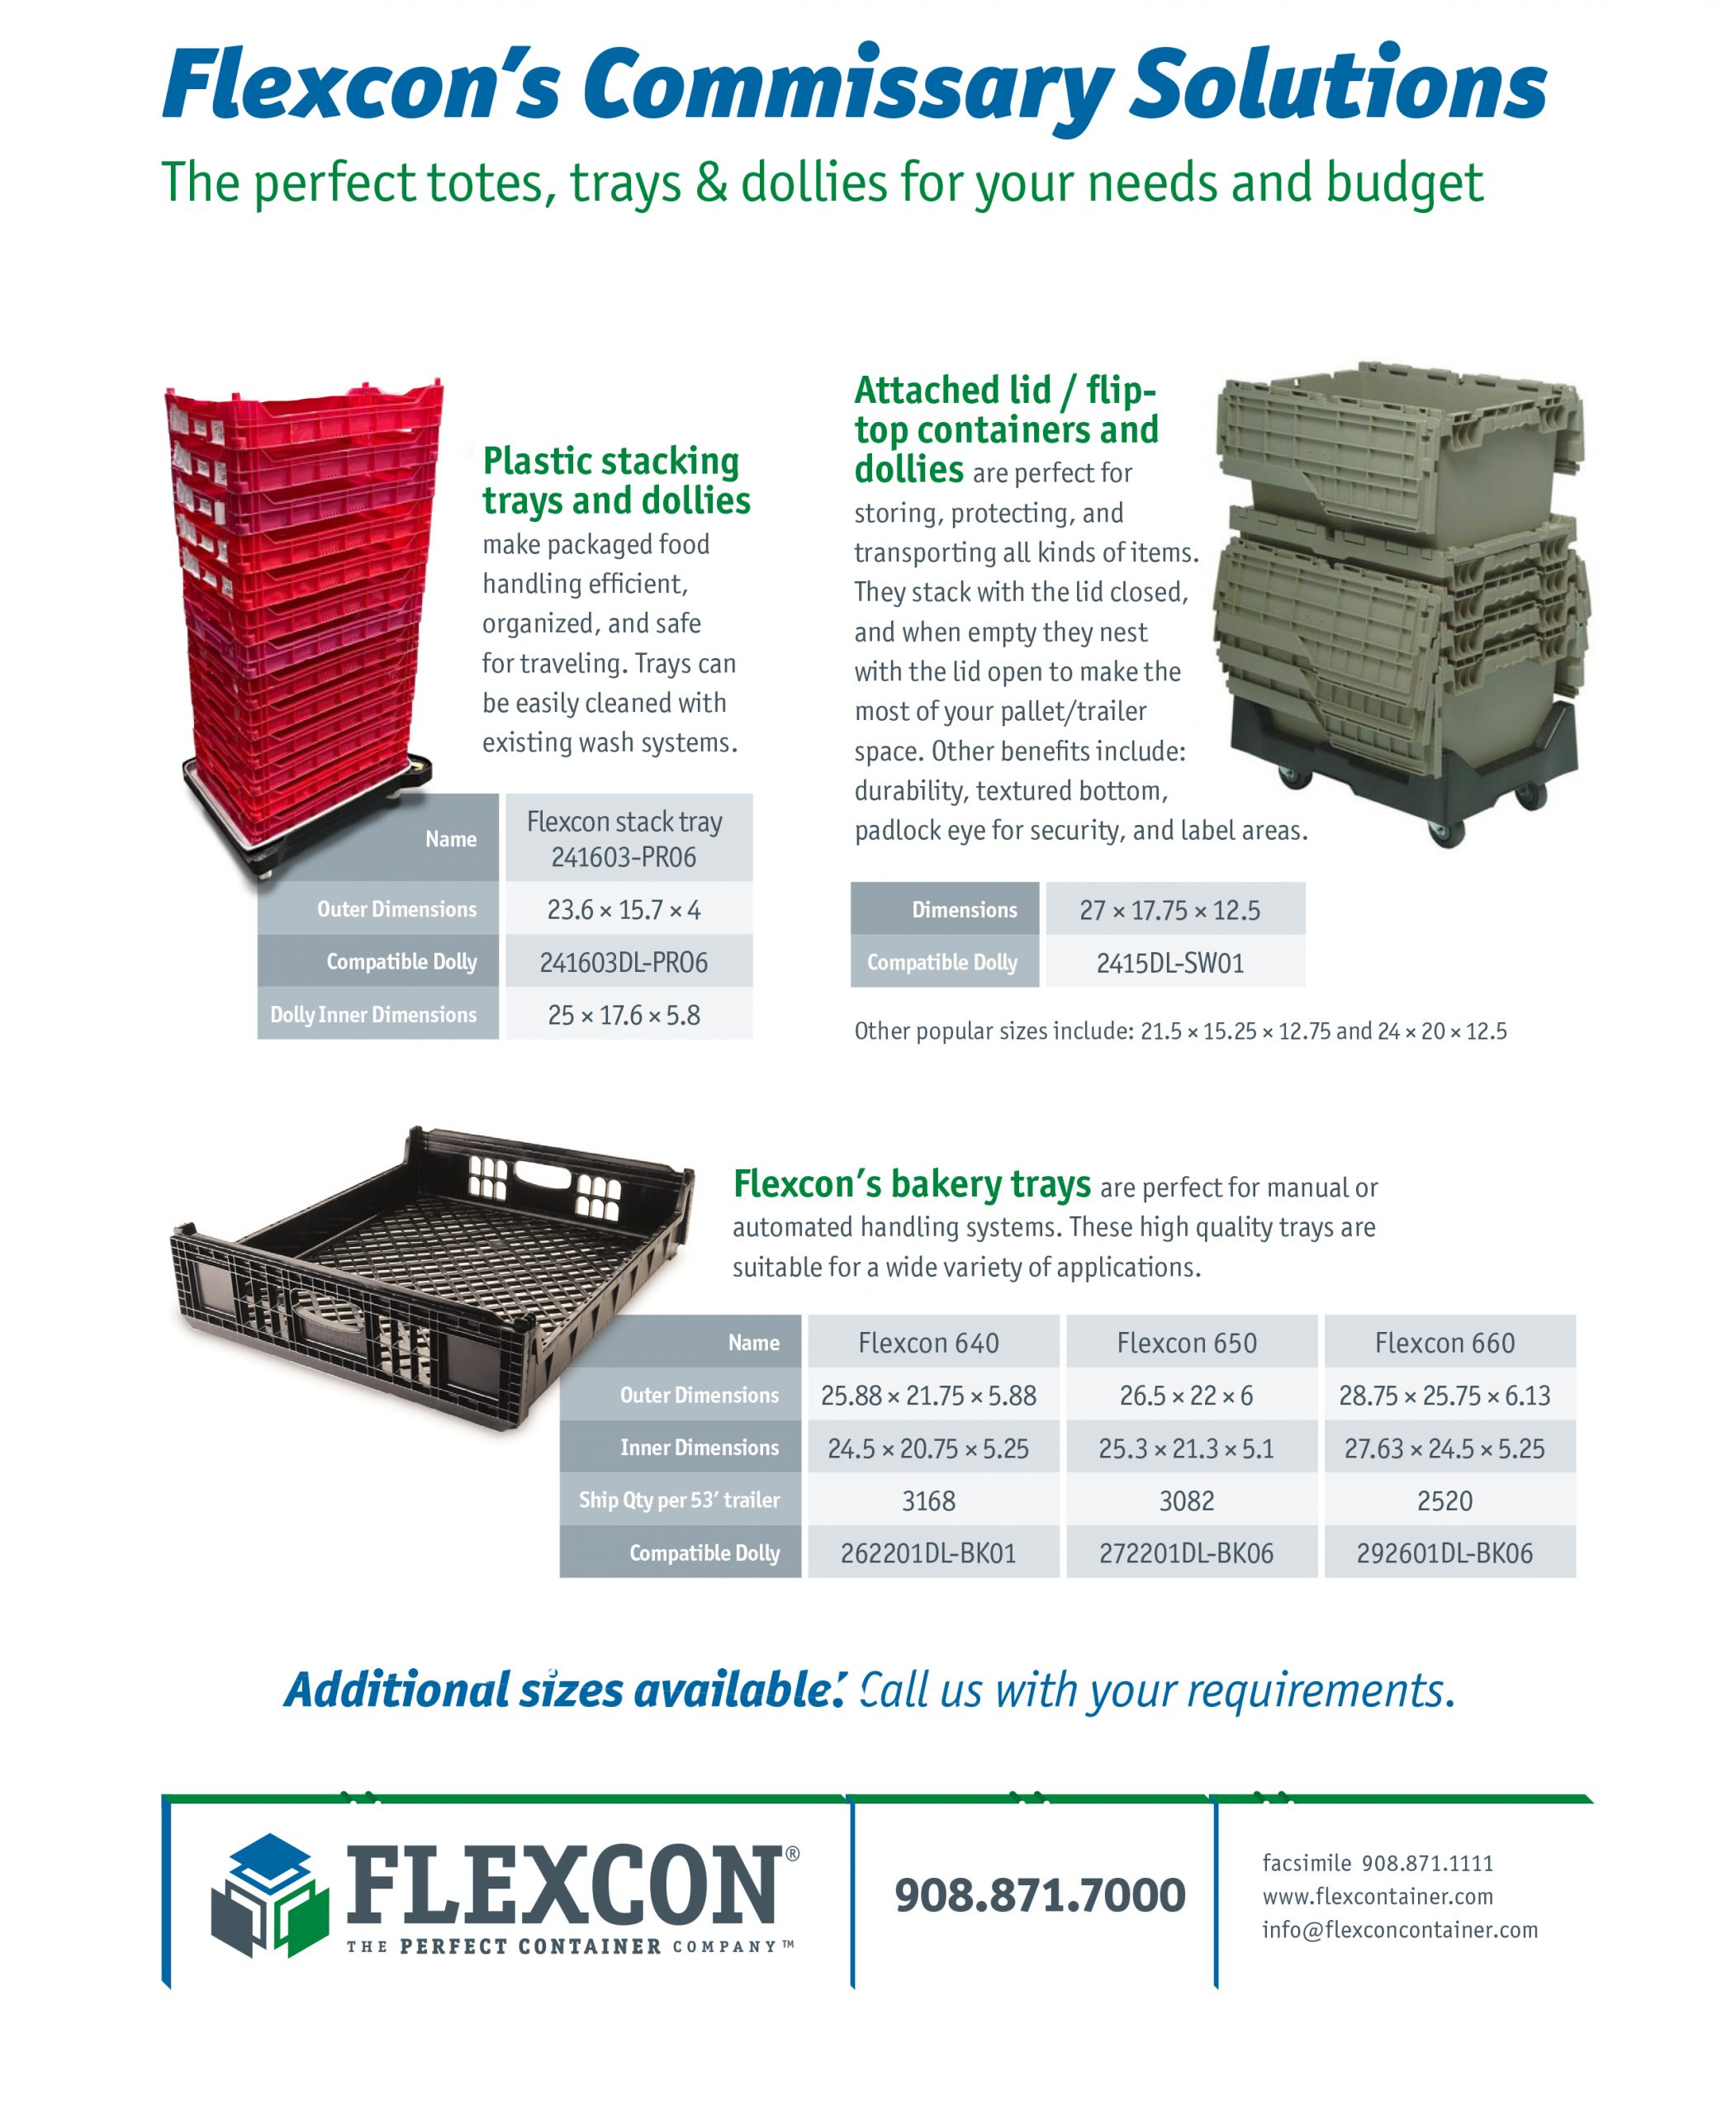 Flexcon Commisary Solutions